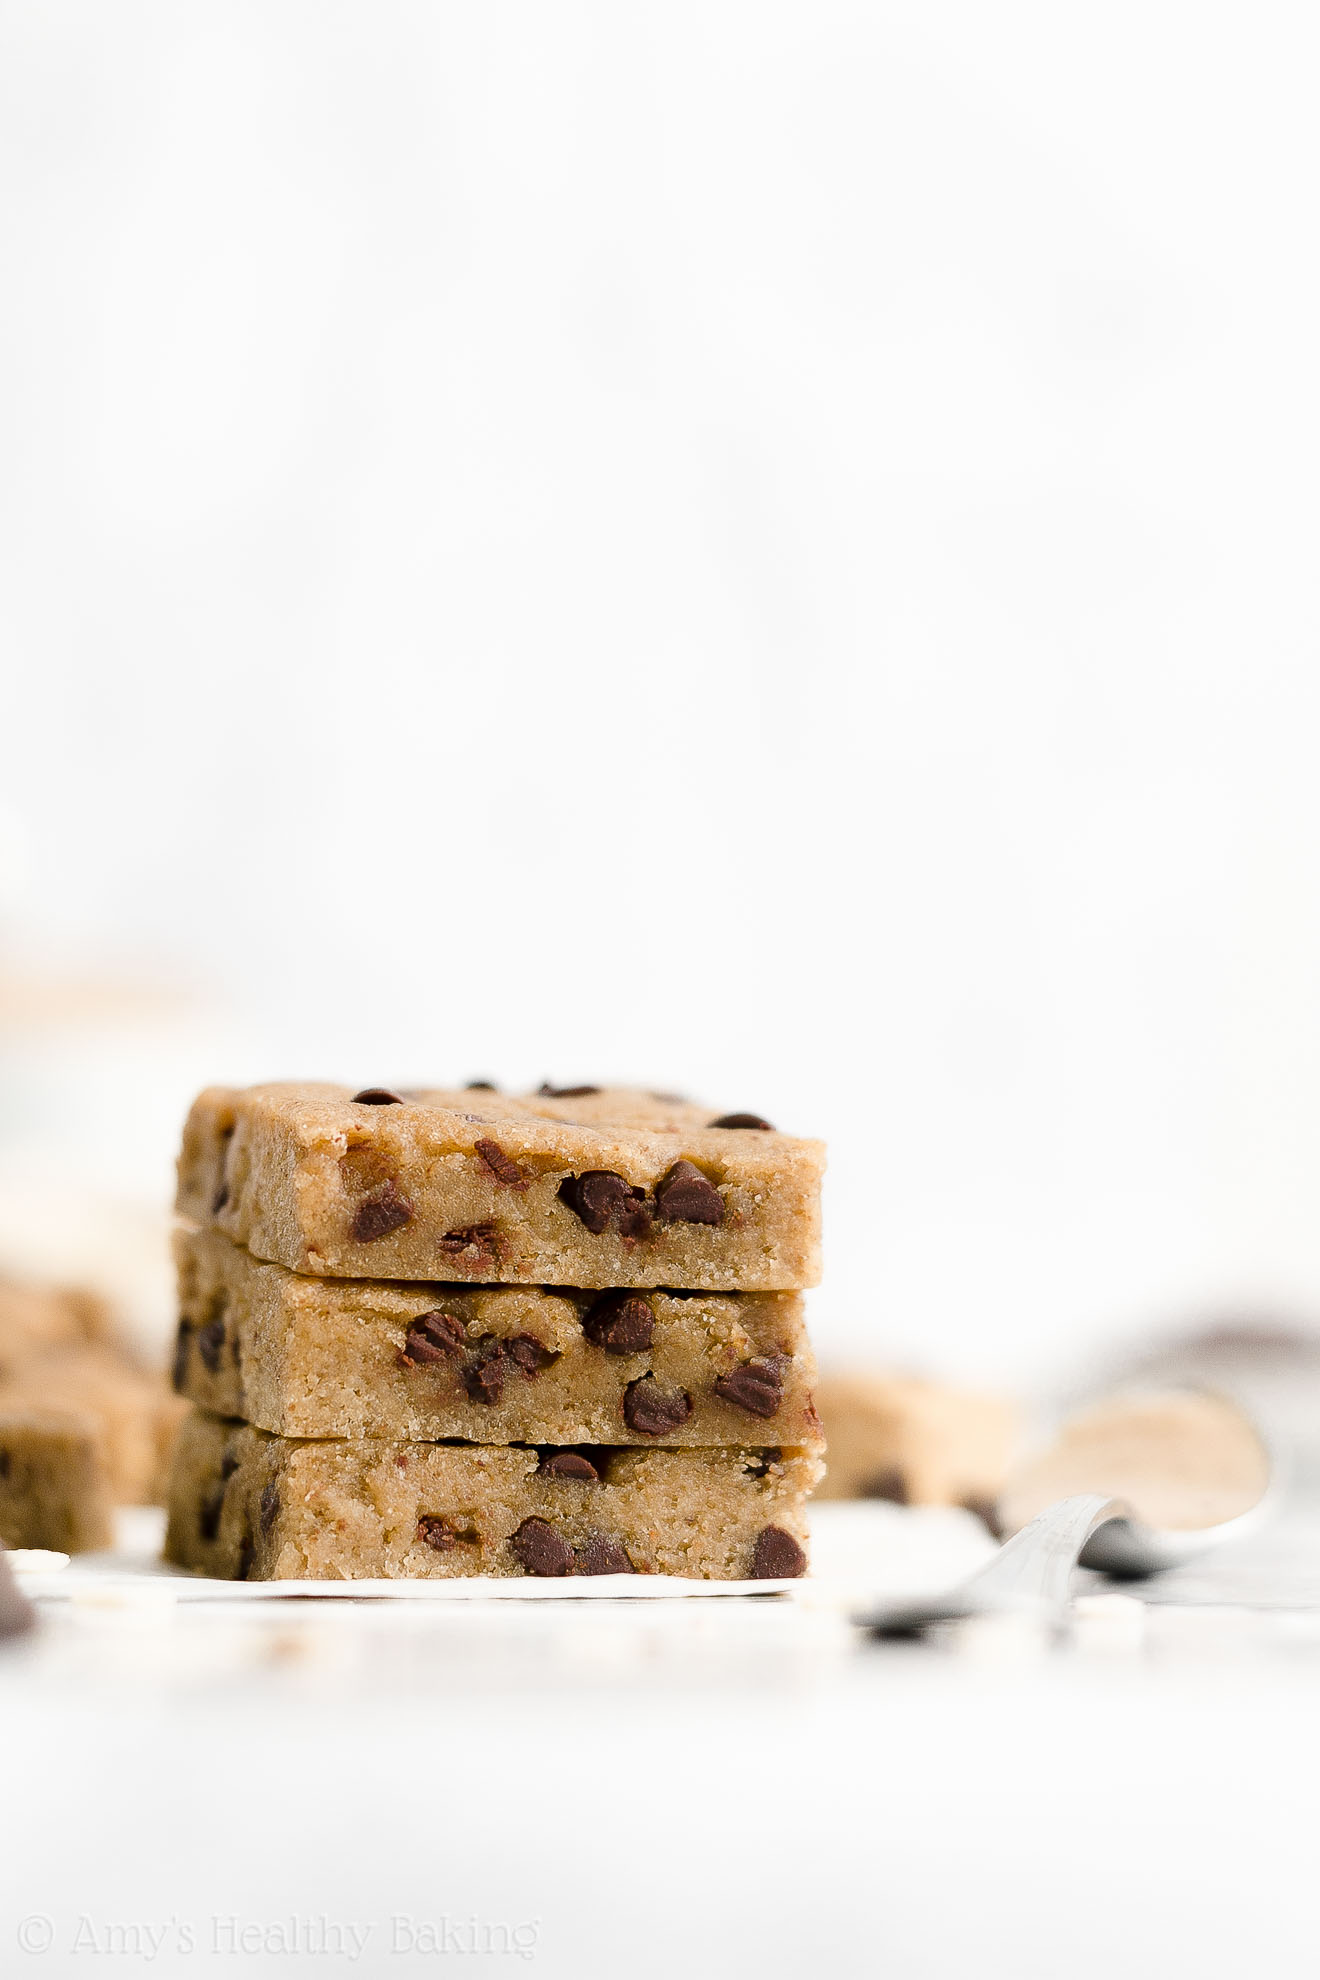 Healthy Gluten Free Vegan Flourless Chocolate Chip Almond Butter Cookie Bars